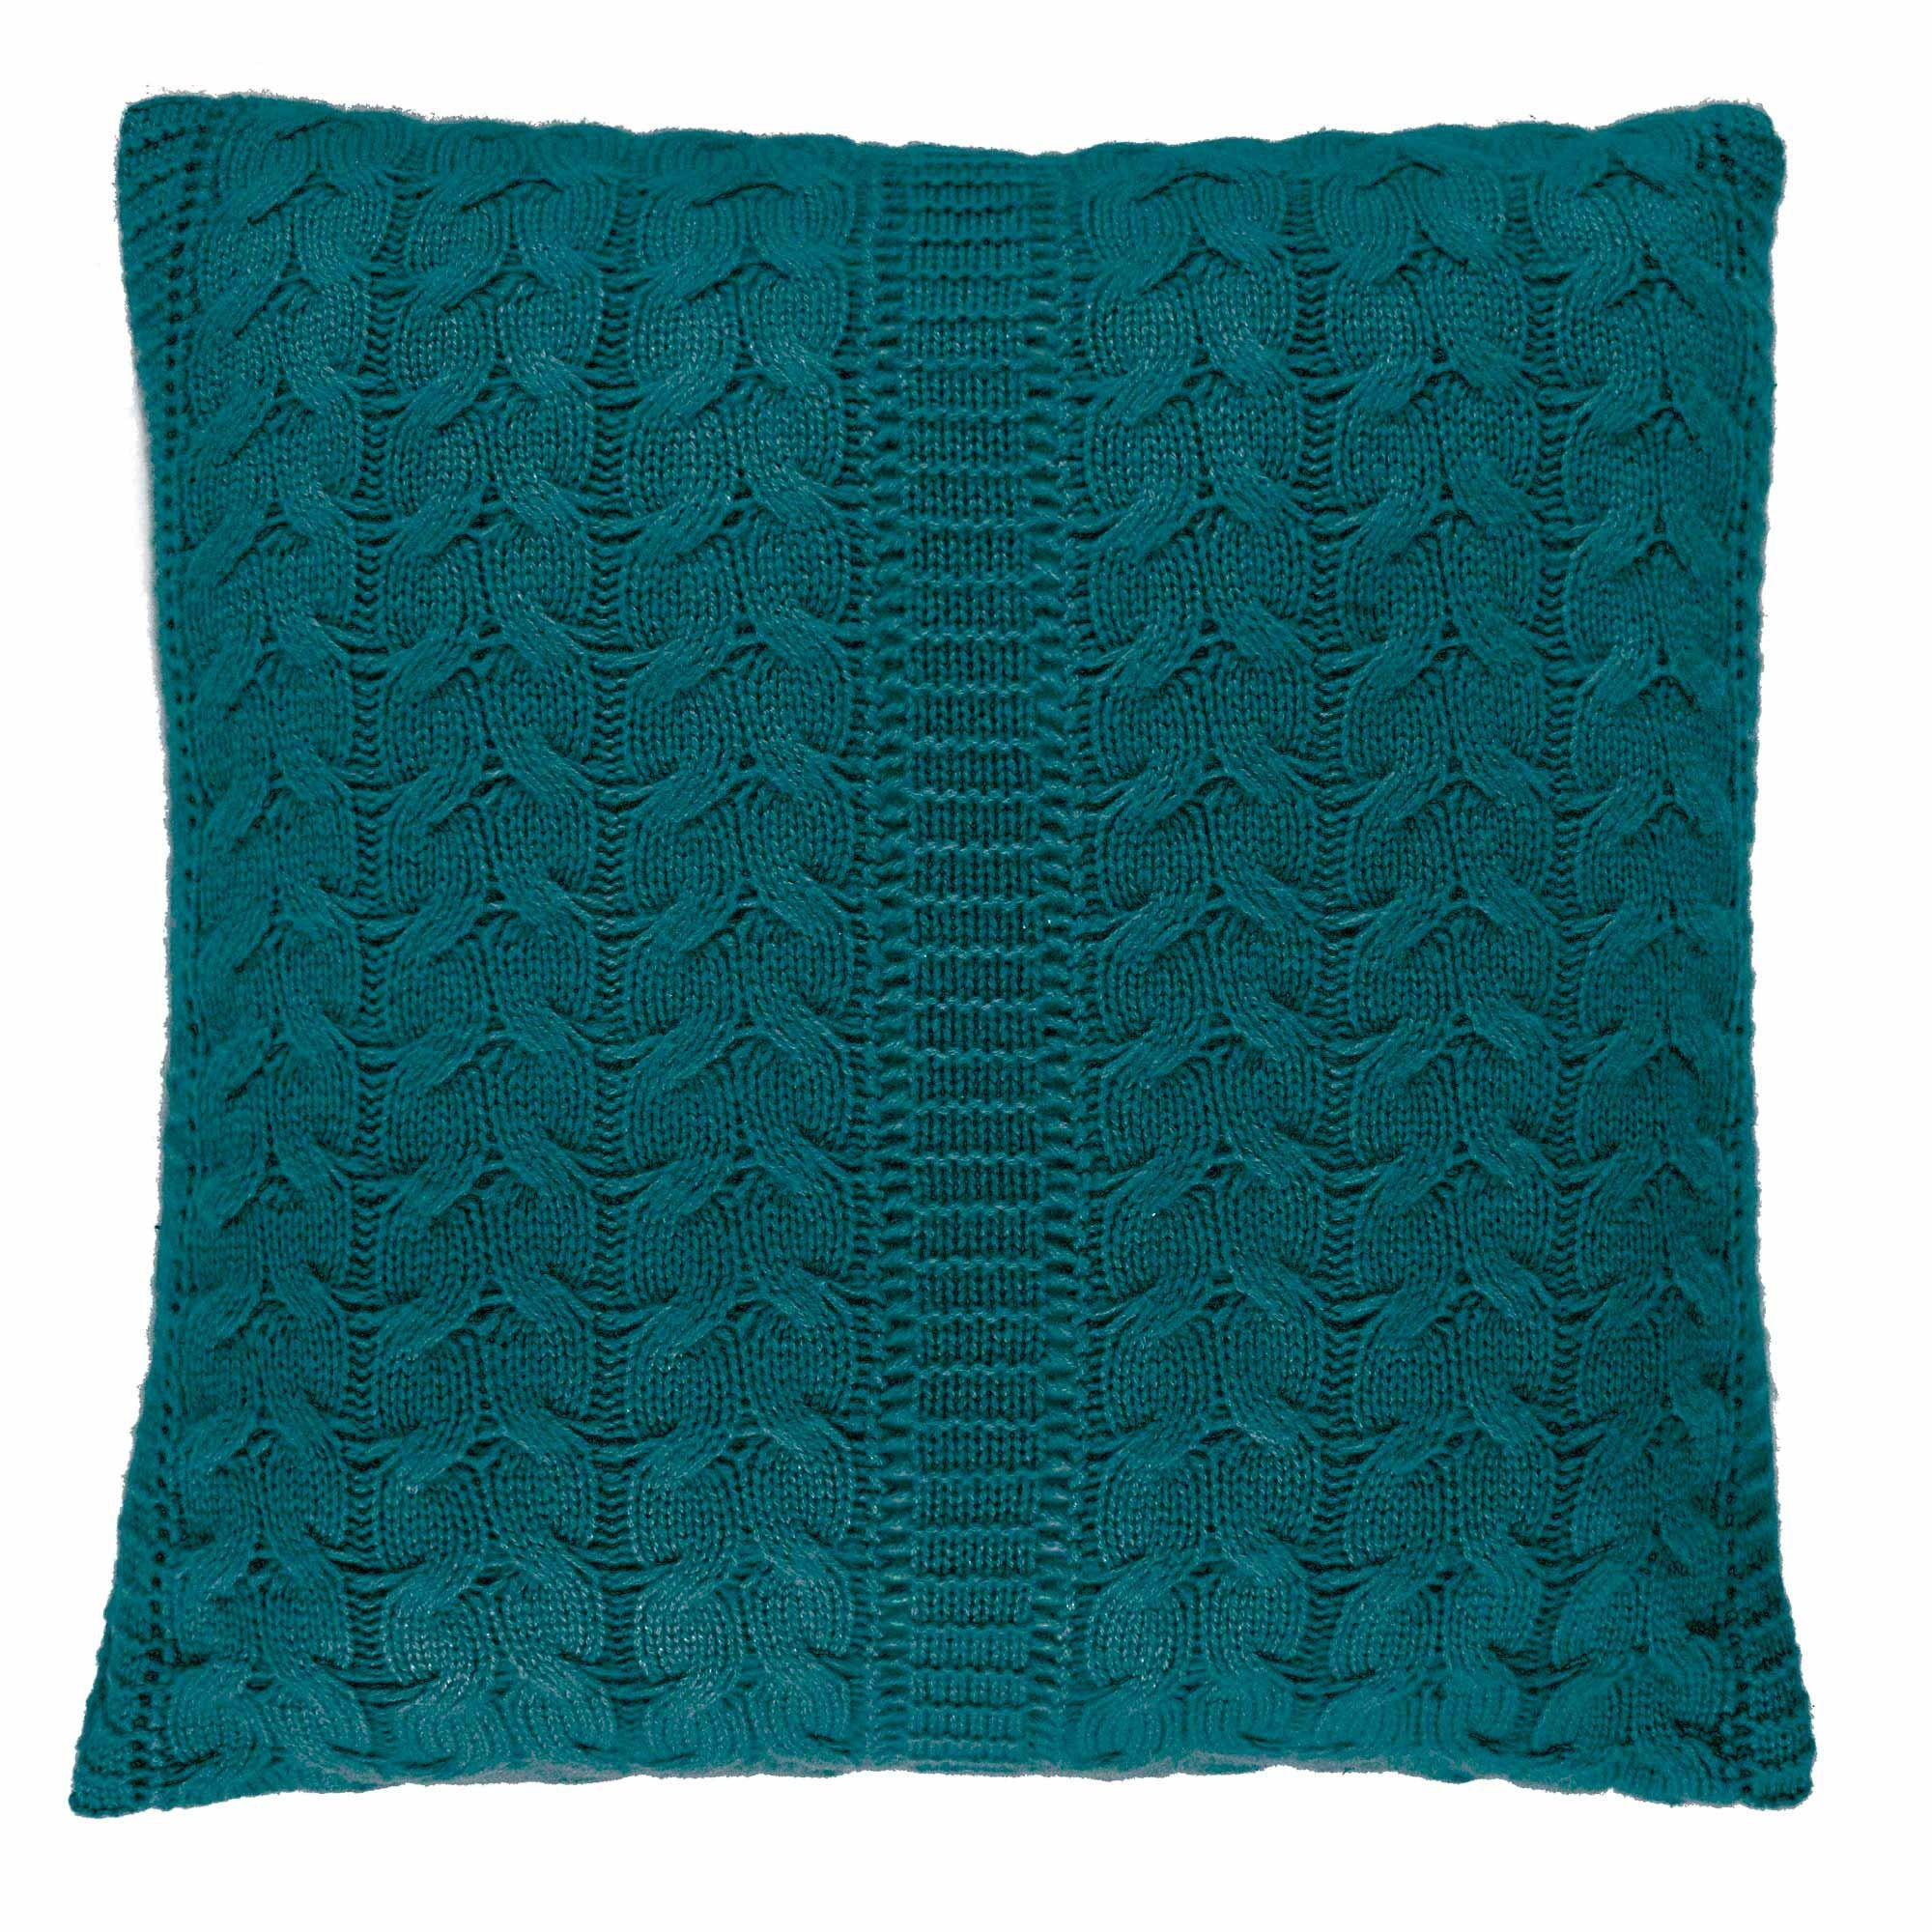 Petrol Kissen Kissen Kulan Pillows And Pillow Cases Pinterest Pillow Cases